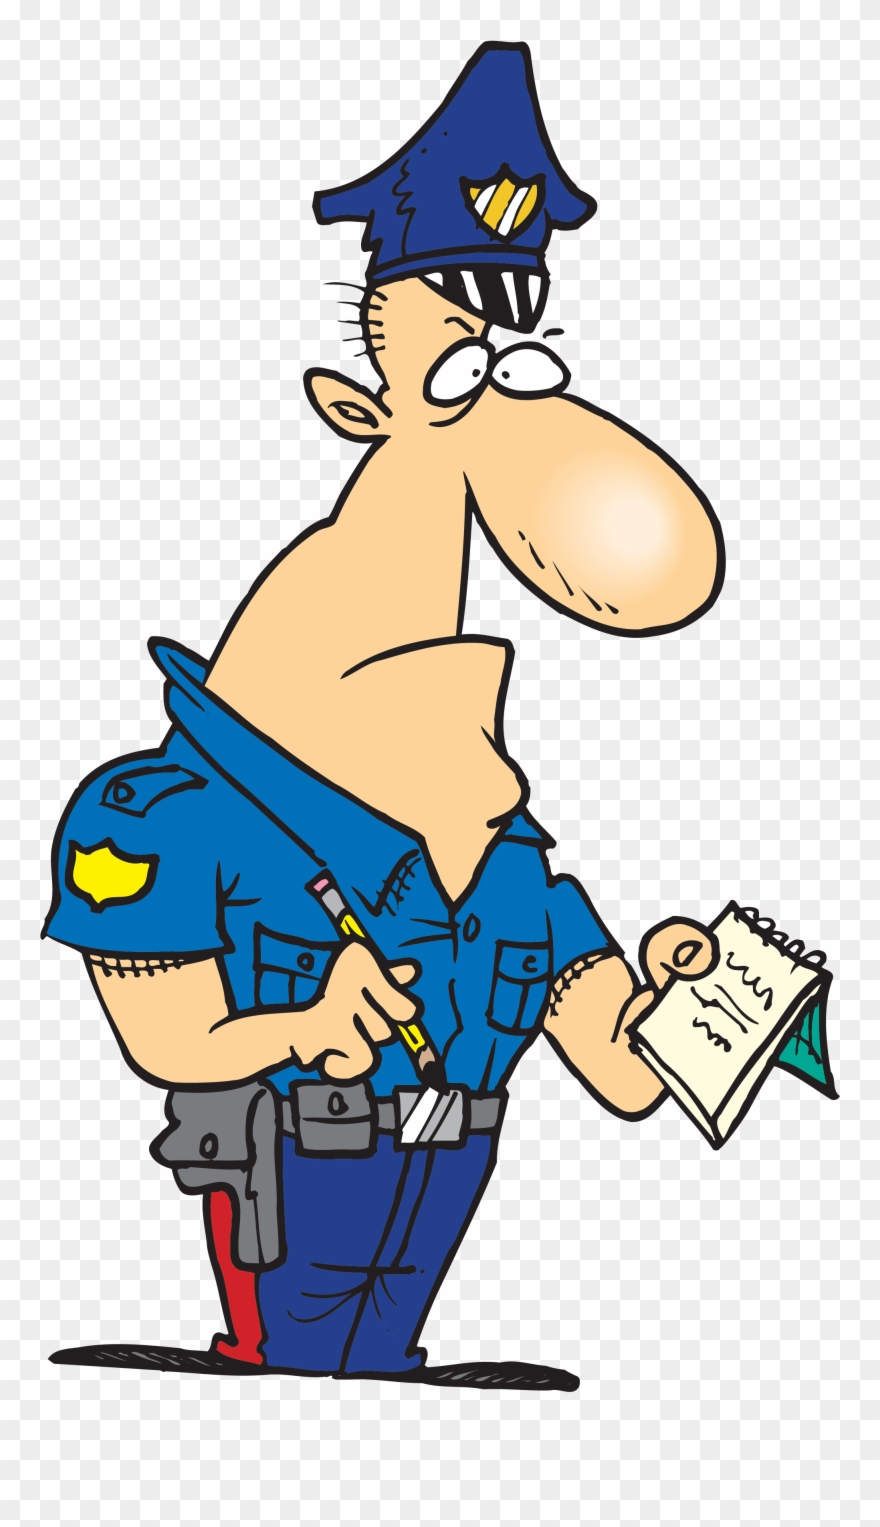 Police report clipart jpg royalty free download Collection Of Free Fined Download On Ubisafe - Police ... jpg royalty free download